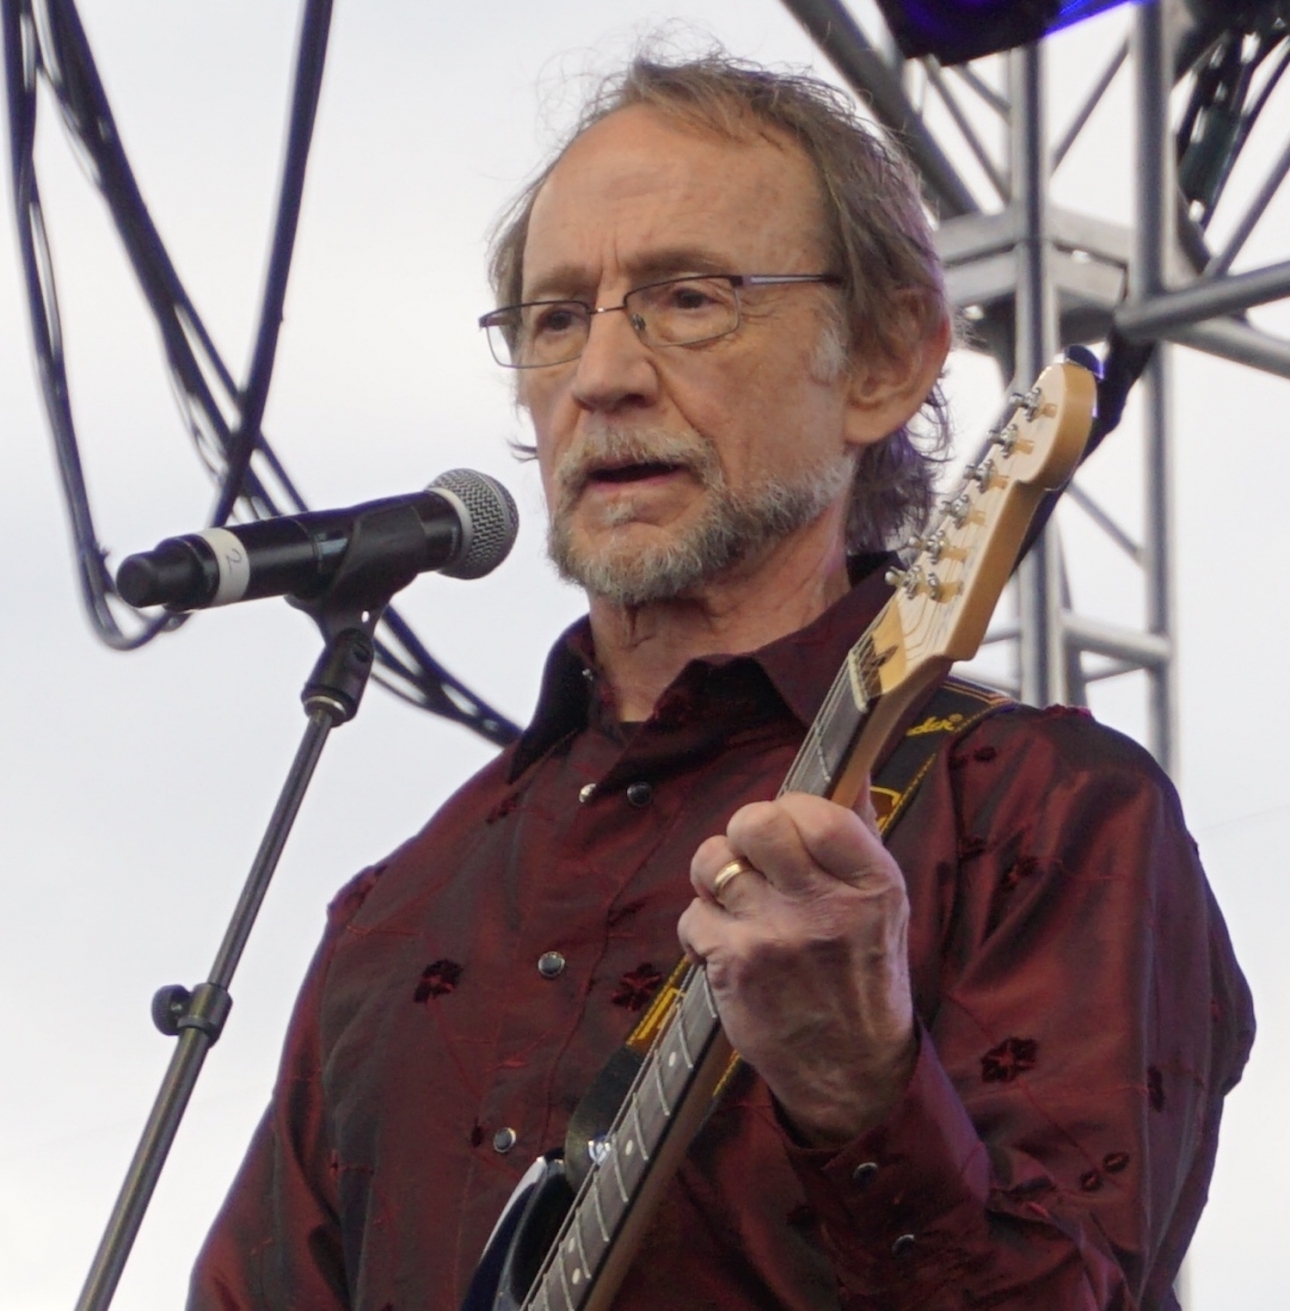 The Monkees Peter Tork has died aged 77